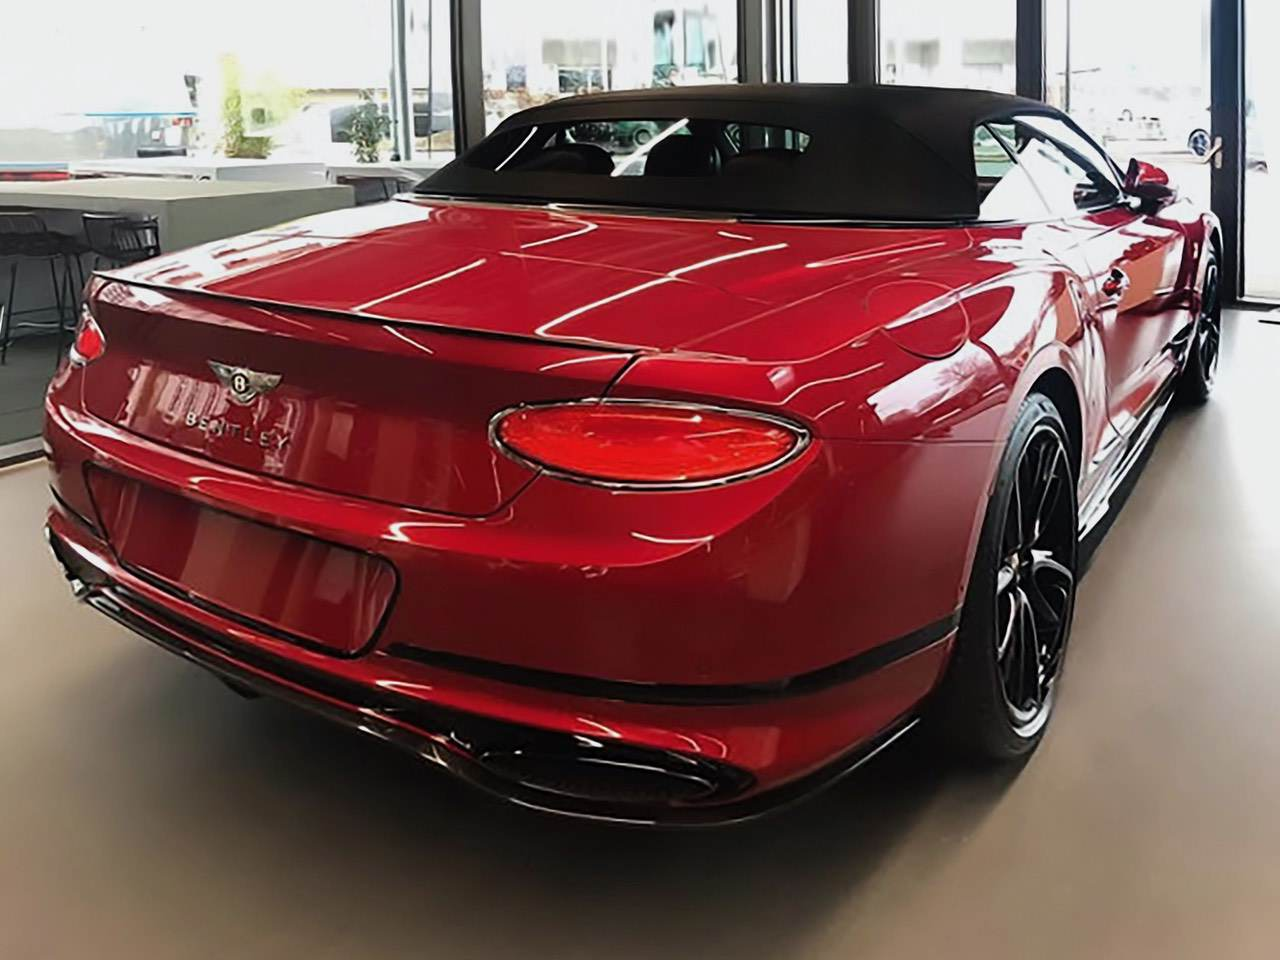 Bentley-Continental-GTC-Dragon-Red-3